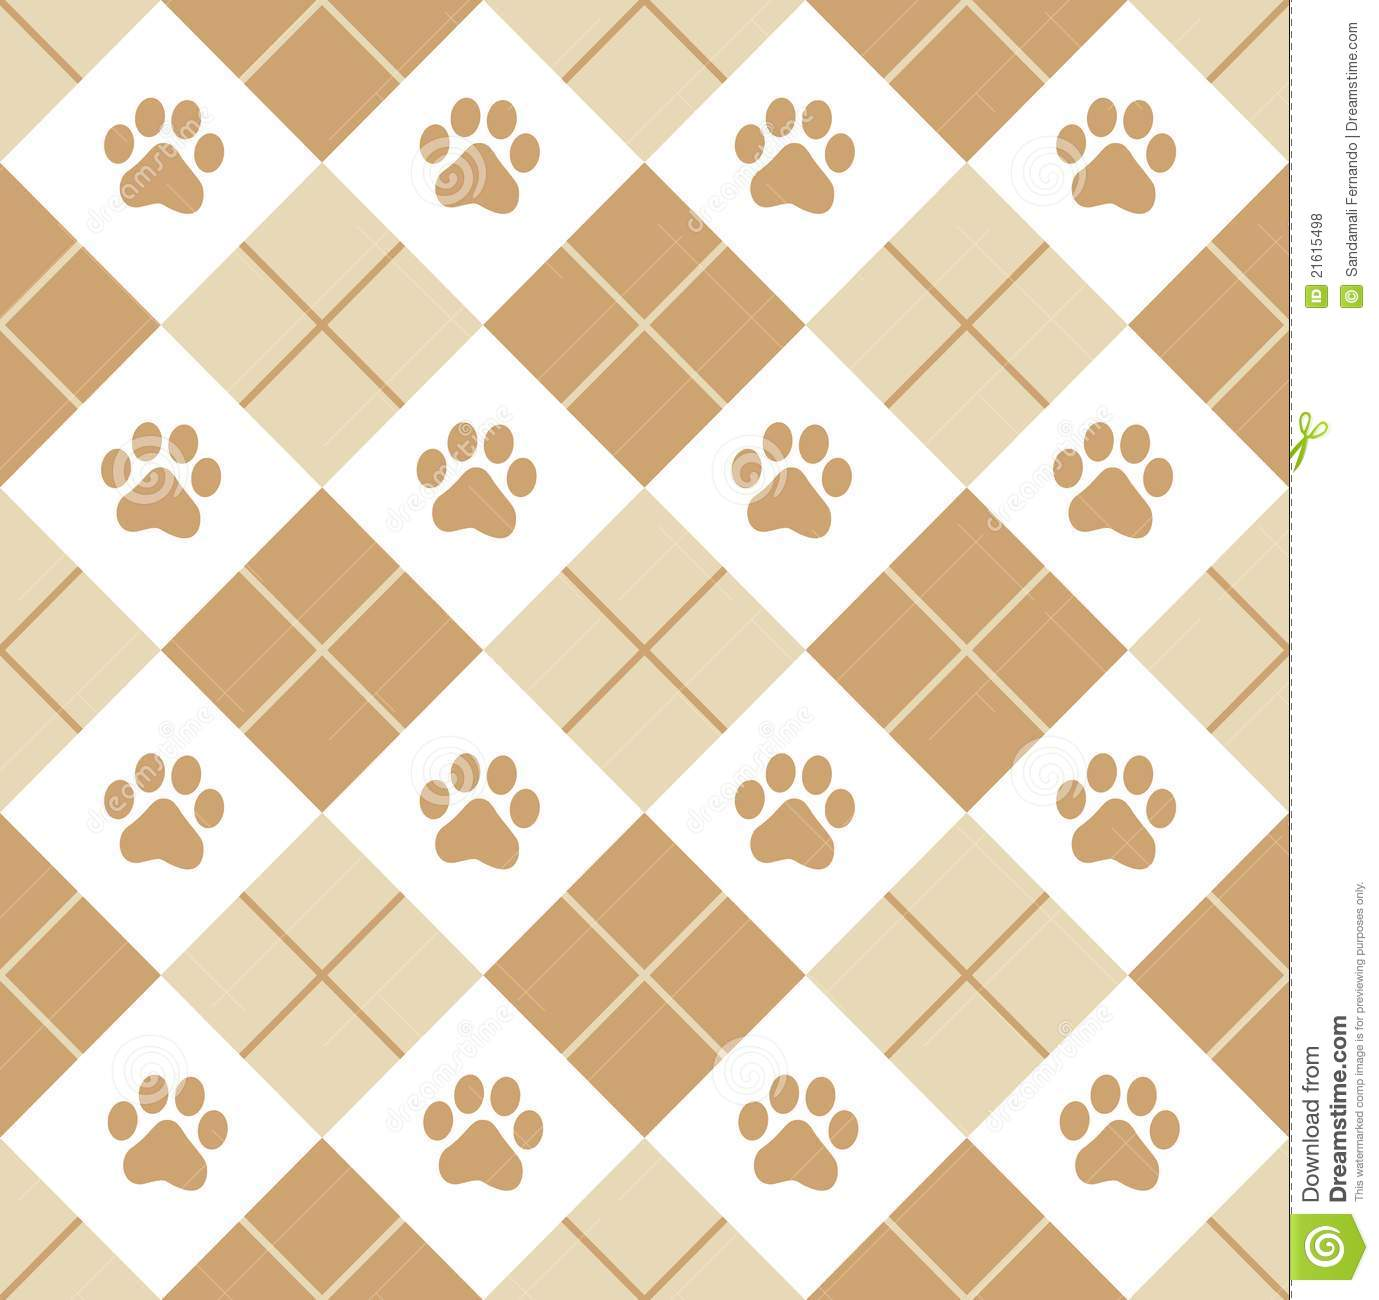 Paw Prints Seamless Stock Vector Illustration Of Fabric